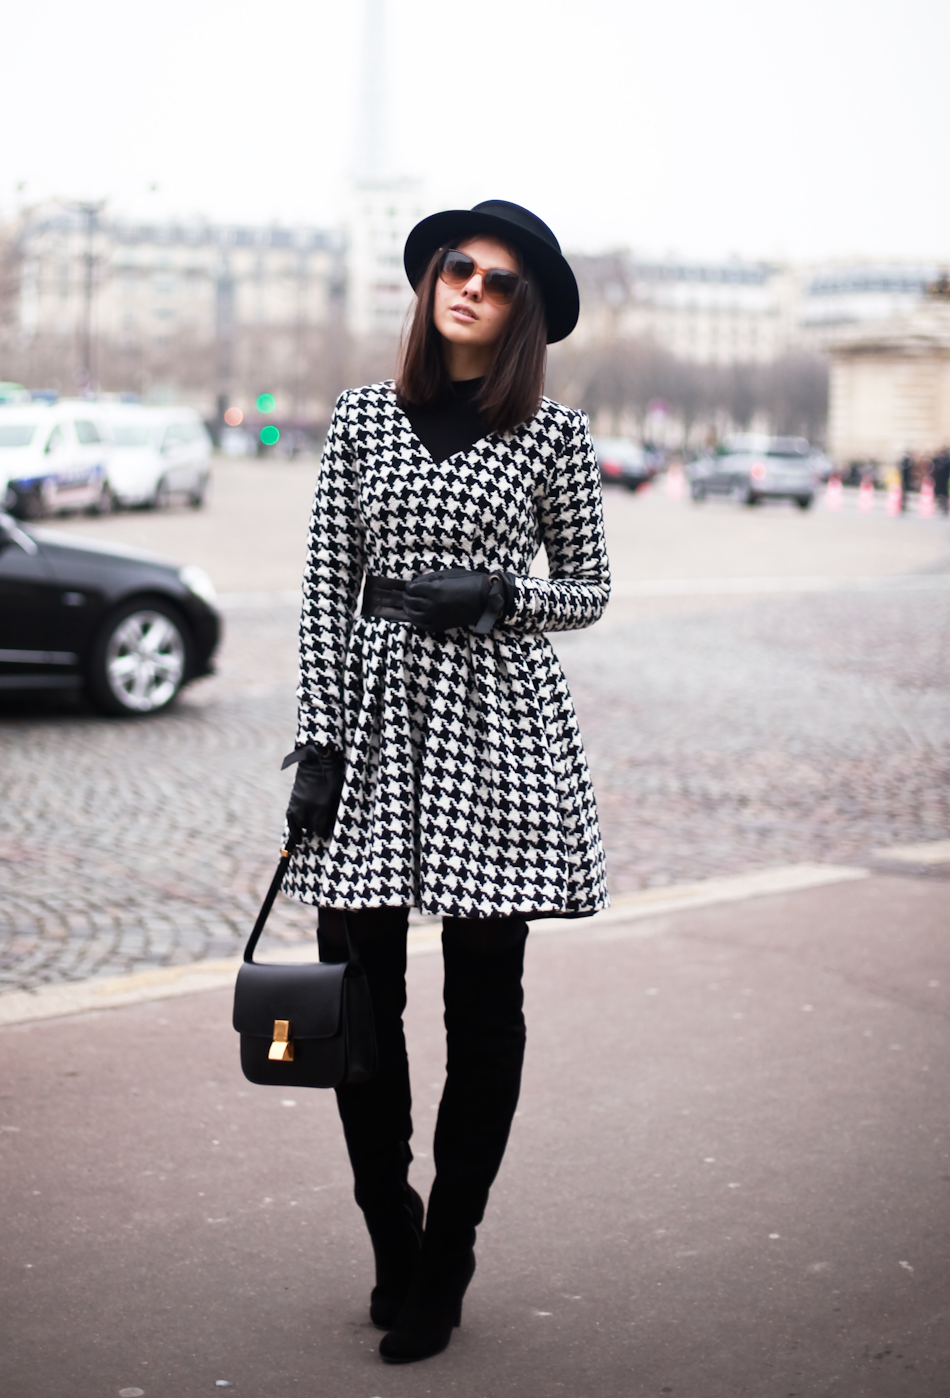 Doina Ciobanu in a houndstooth dress and belt designed by herself